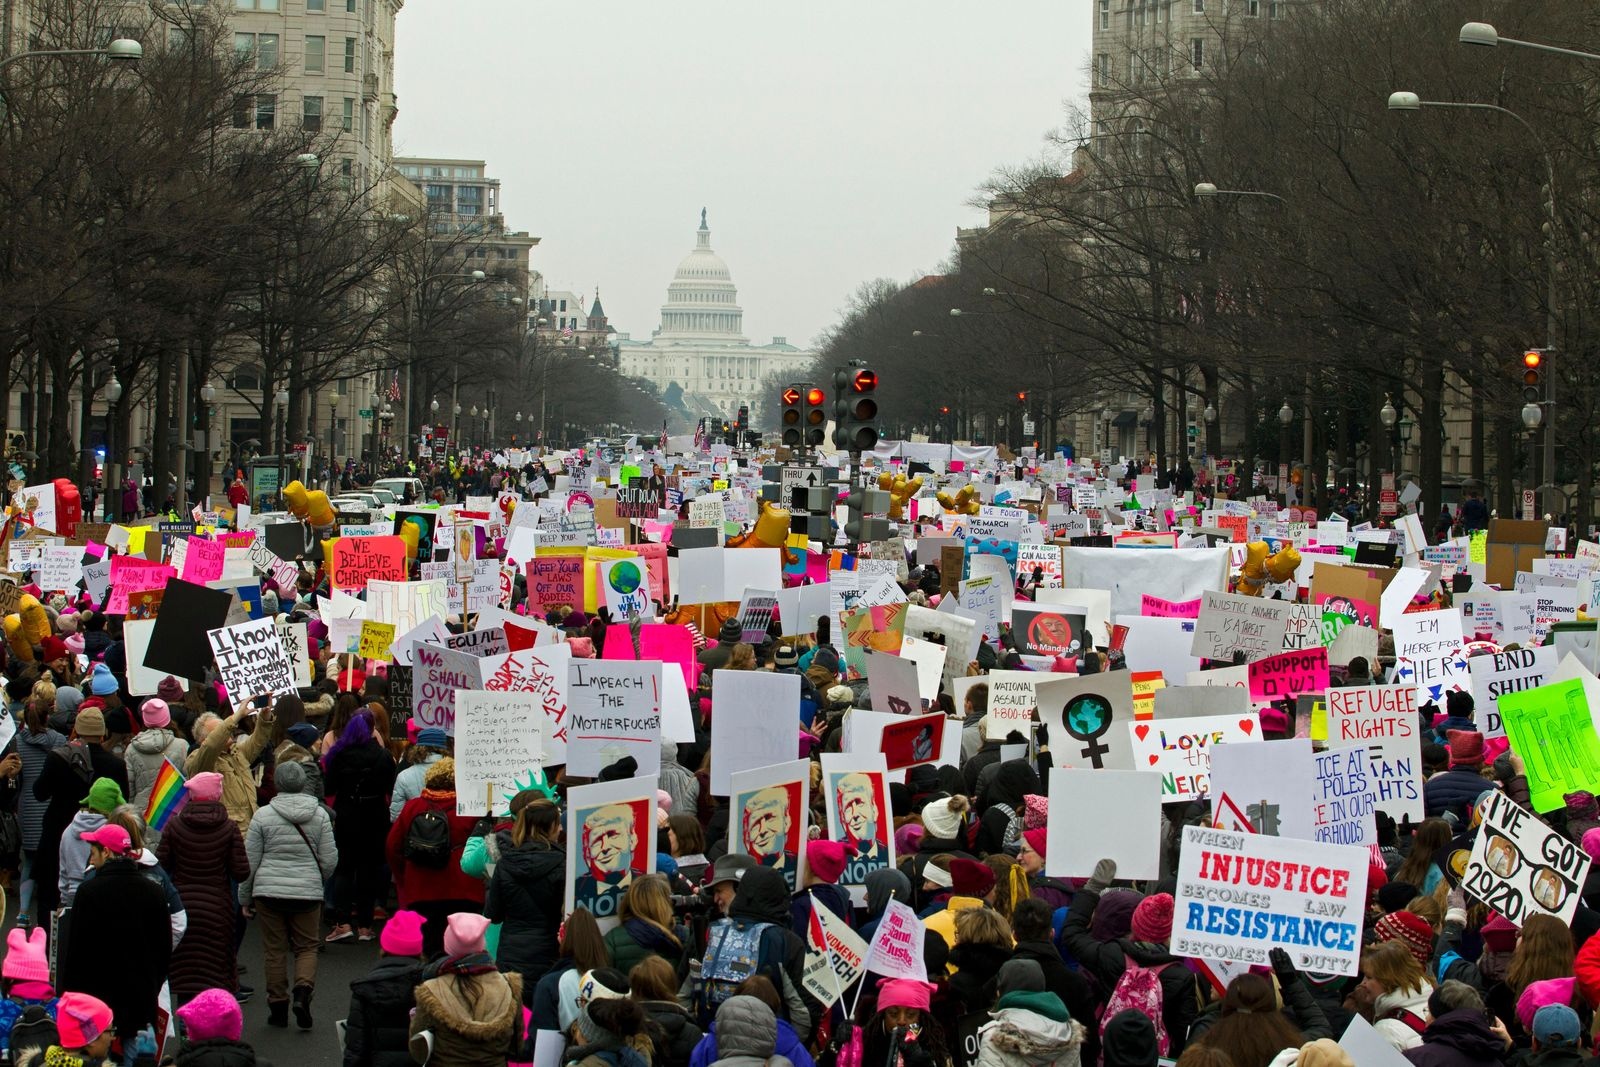 Demonstrators march on Pennsylvania Av. during the Women's March in Washington on Saturday, Jan. 19, 2019. (AP Photo/Jose Luis Magana)